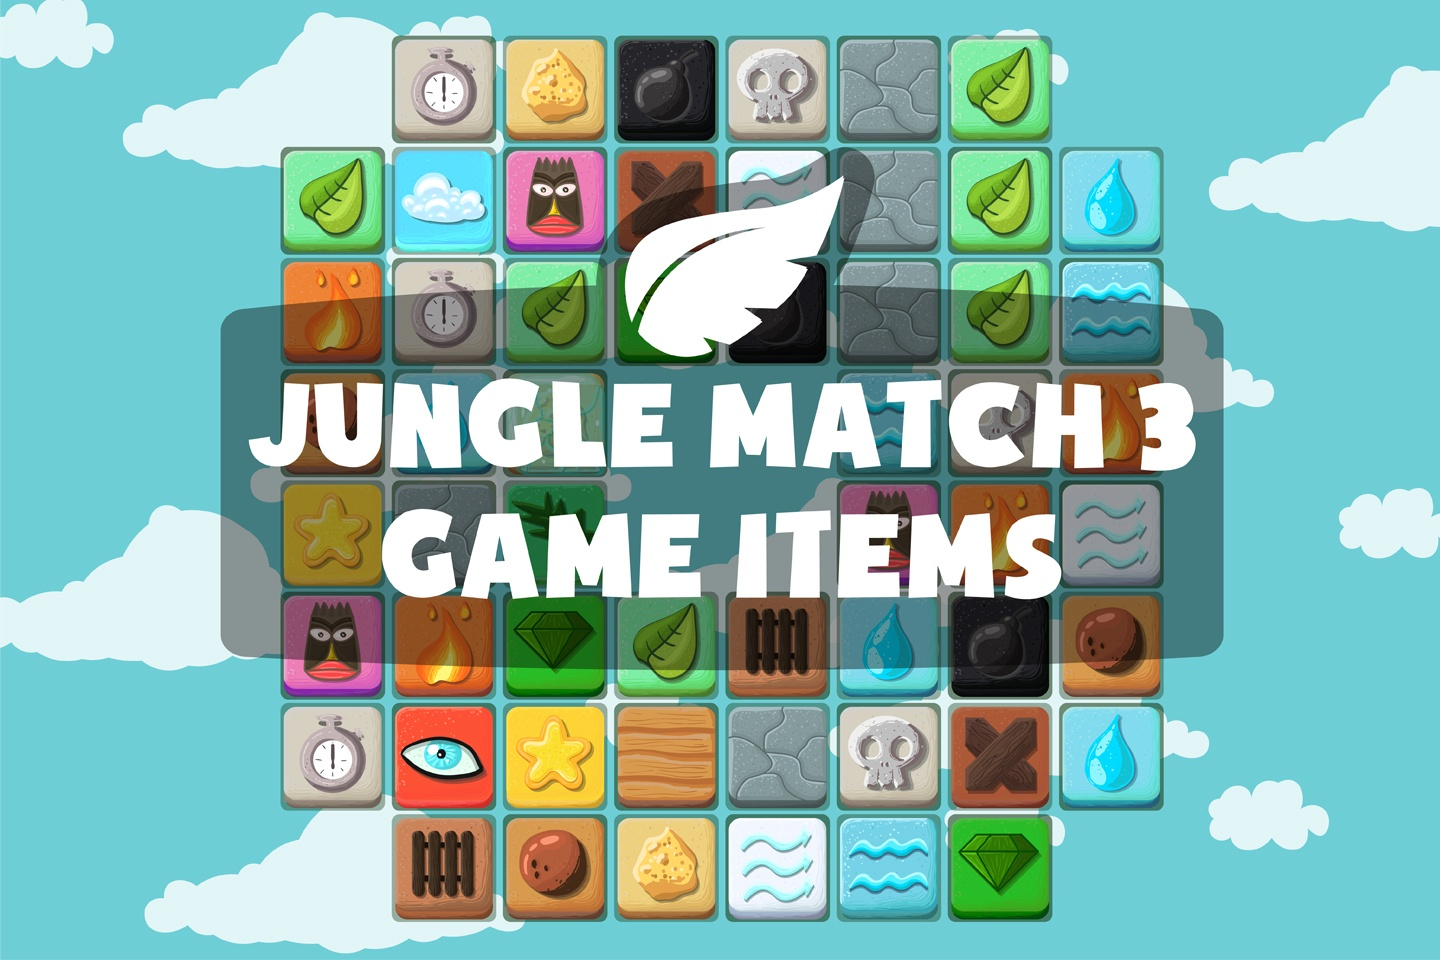 Jungle Match 3 Game Items